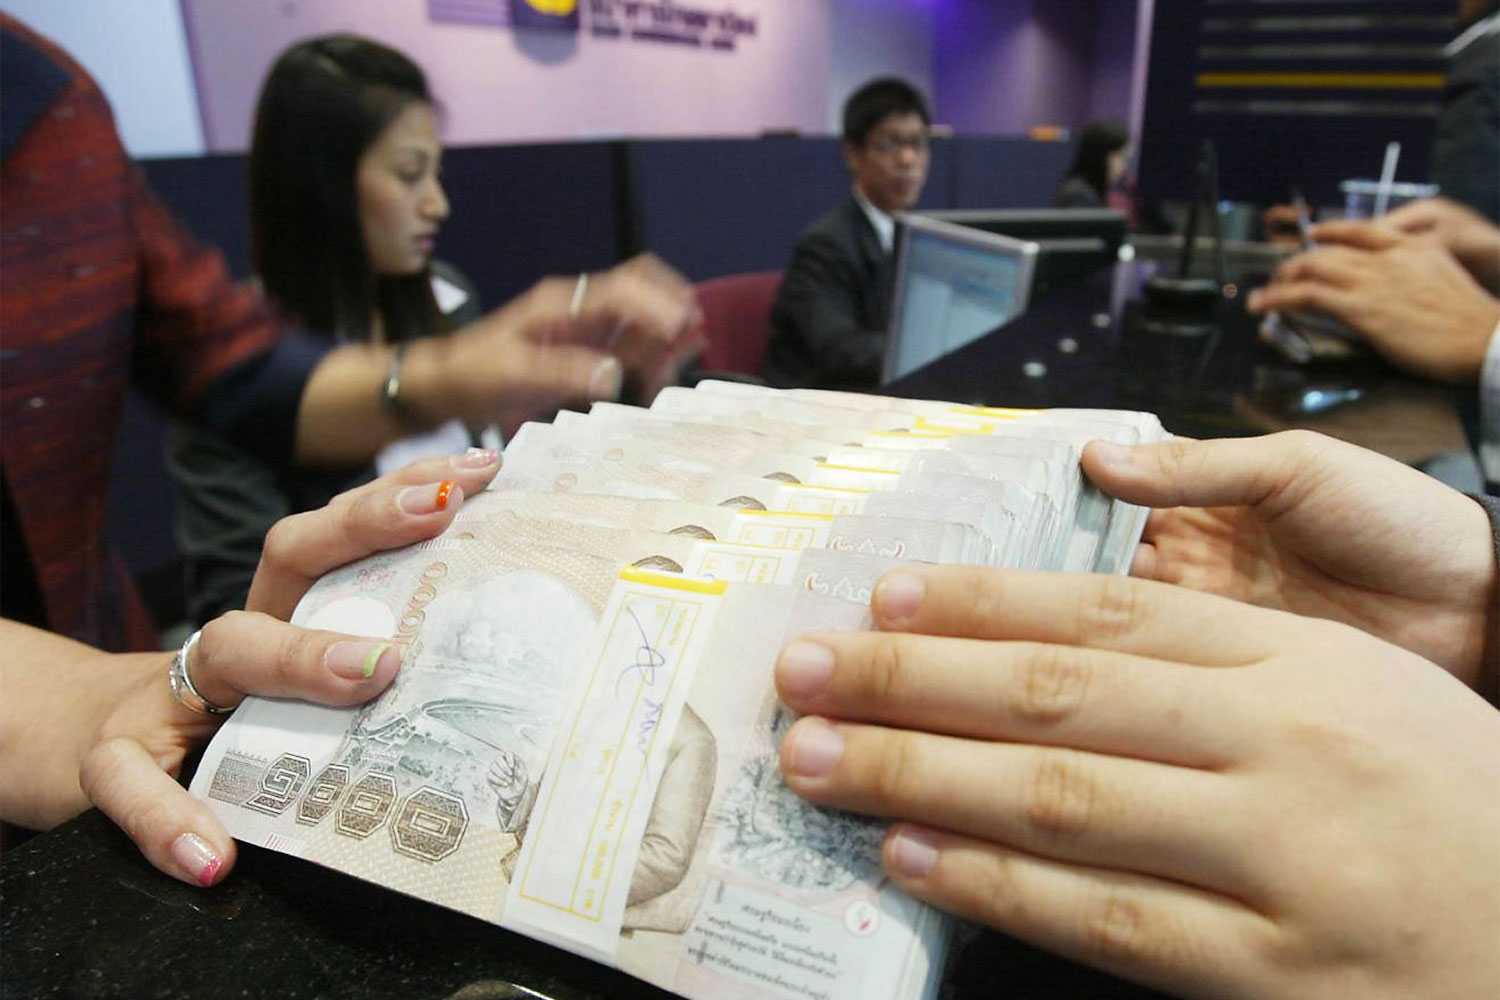 The Bank of Thailand is offering 500 billion baht in soft loans to financial institutions at 0.01% interest to pass on to SMEs at 2% interest. (Photo by Phrakrit Juntawong)